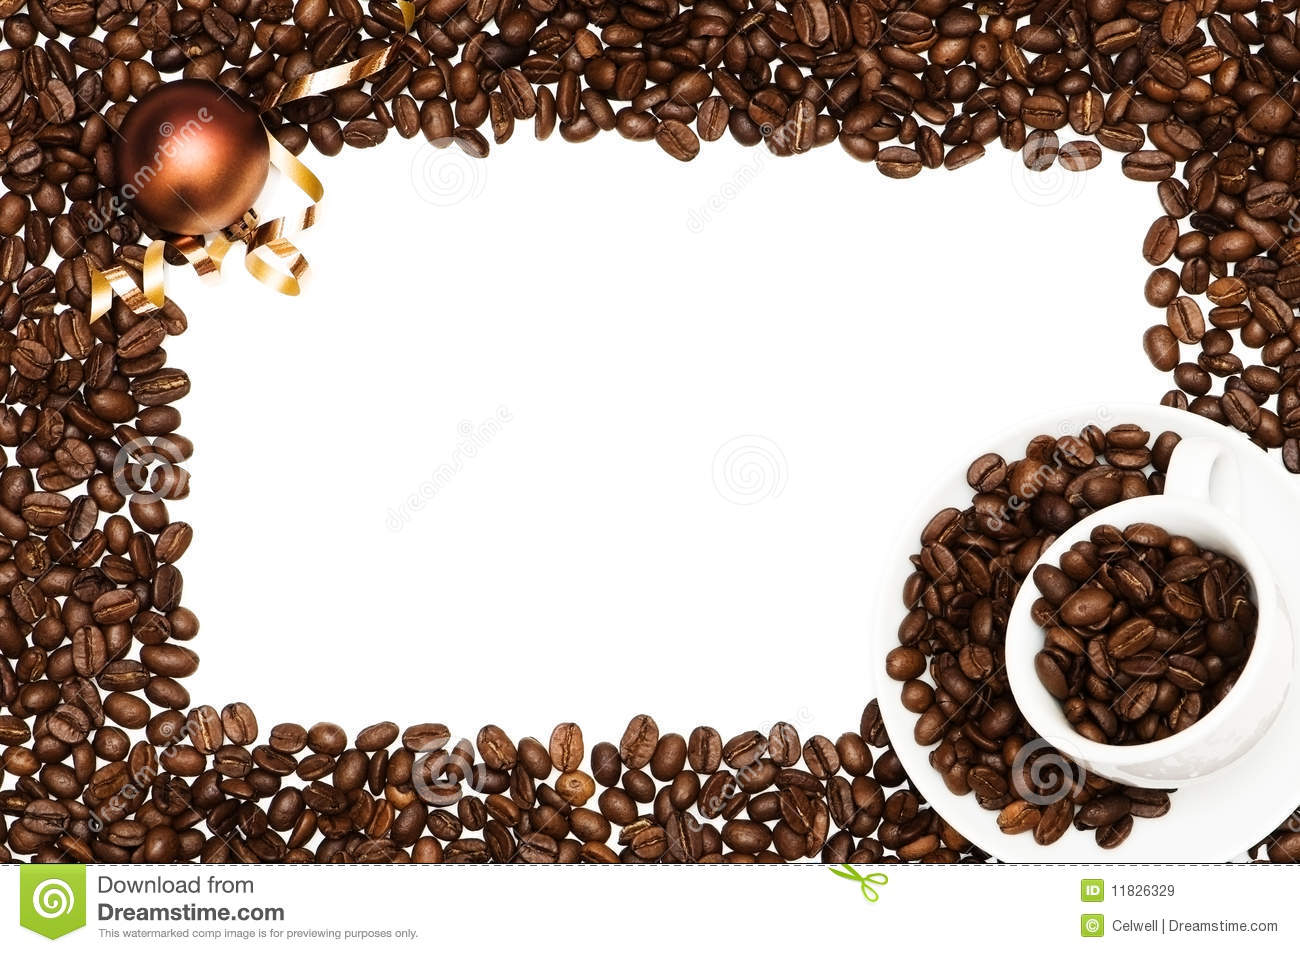 Christmas Coffee Frame Royalty Free Stock Images - Image: 11826329